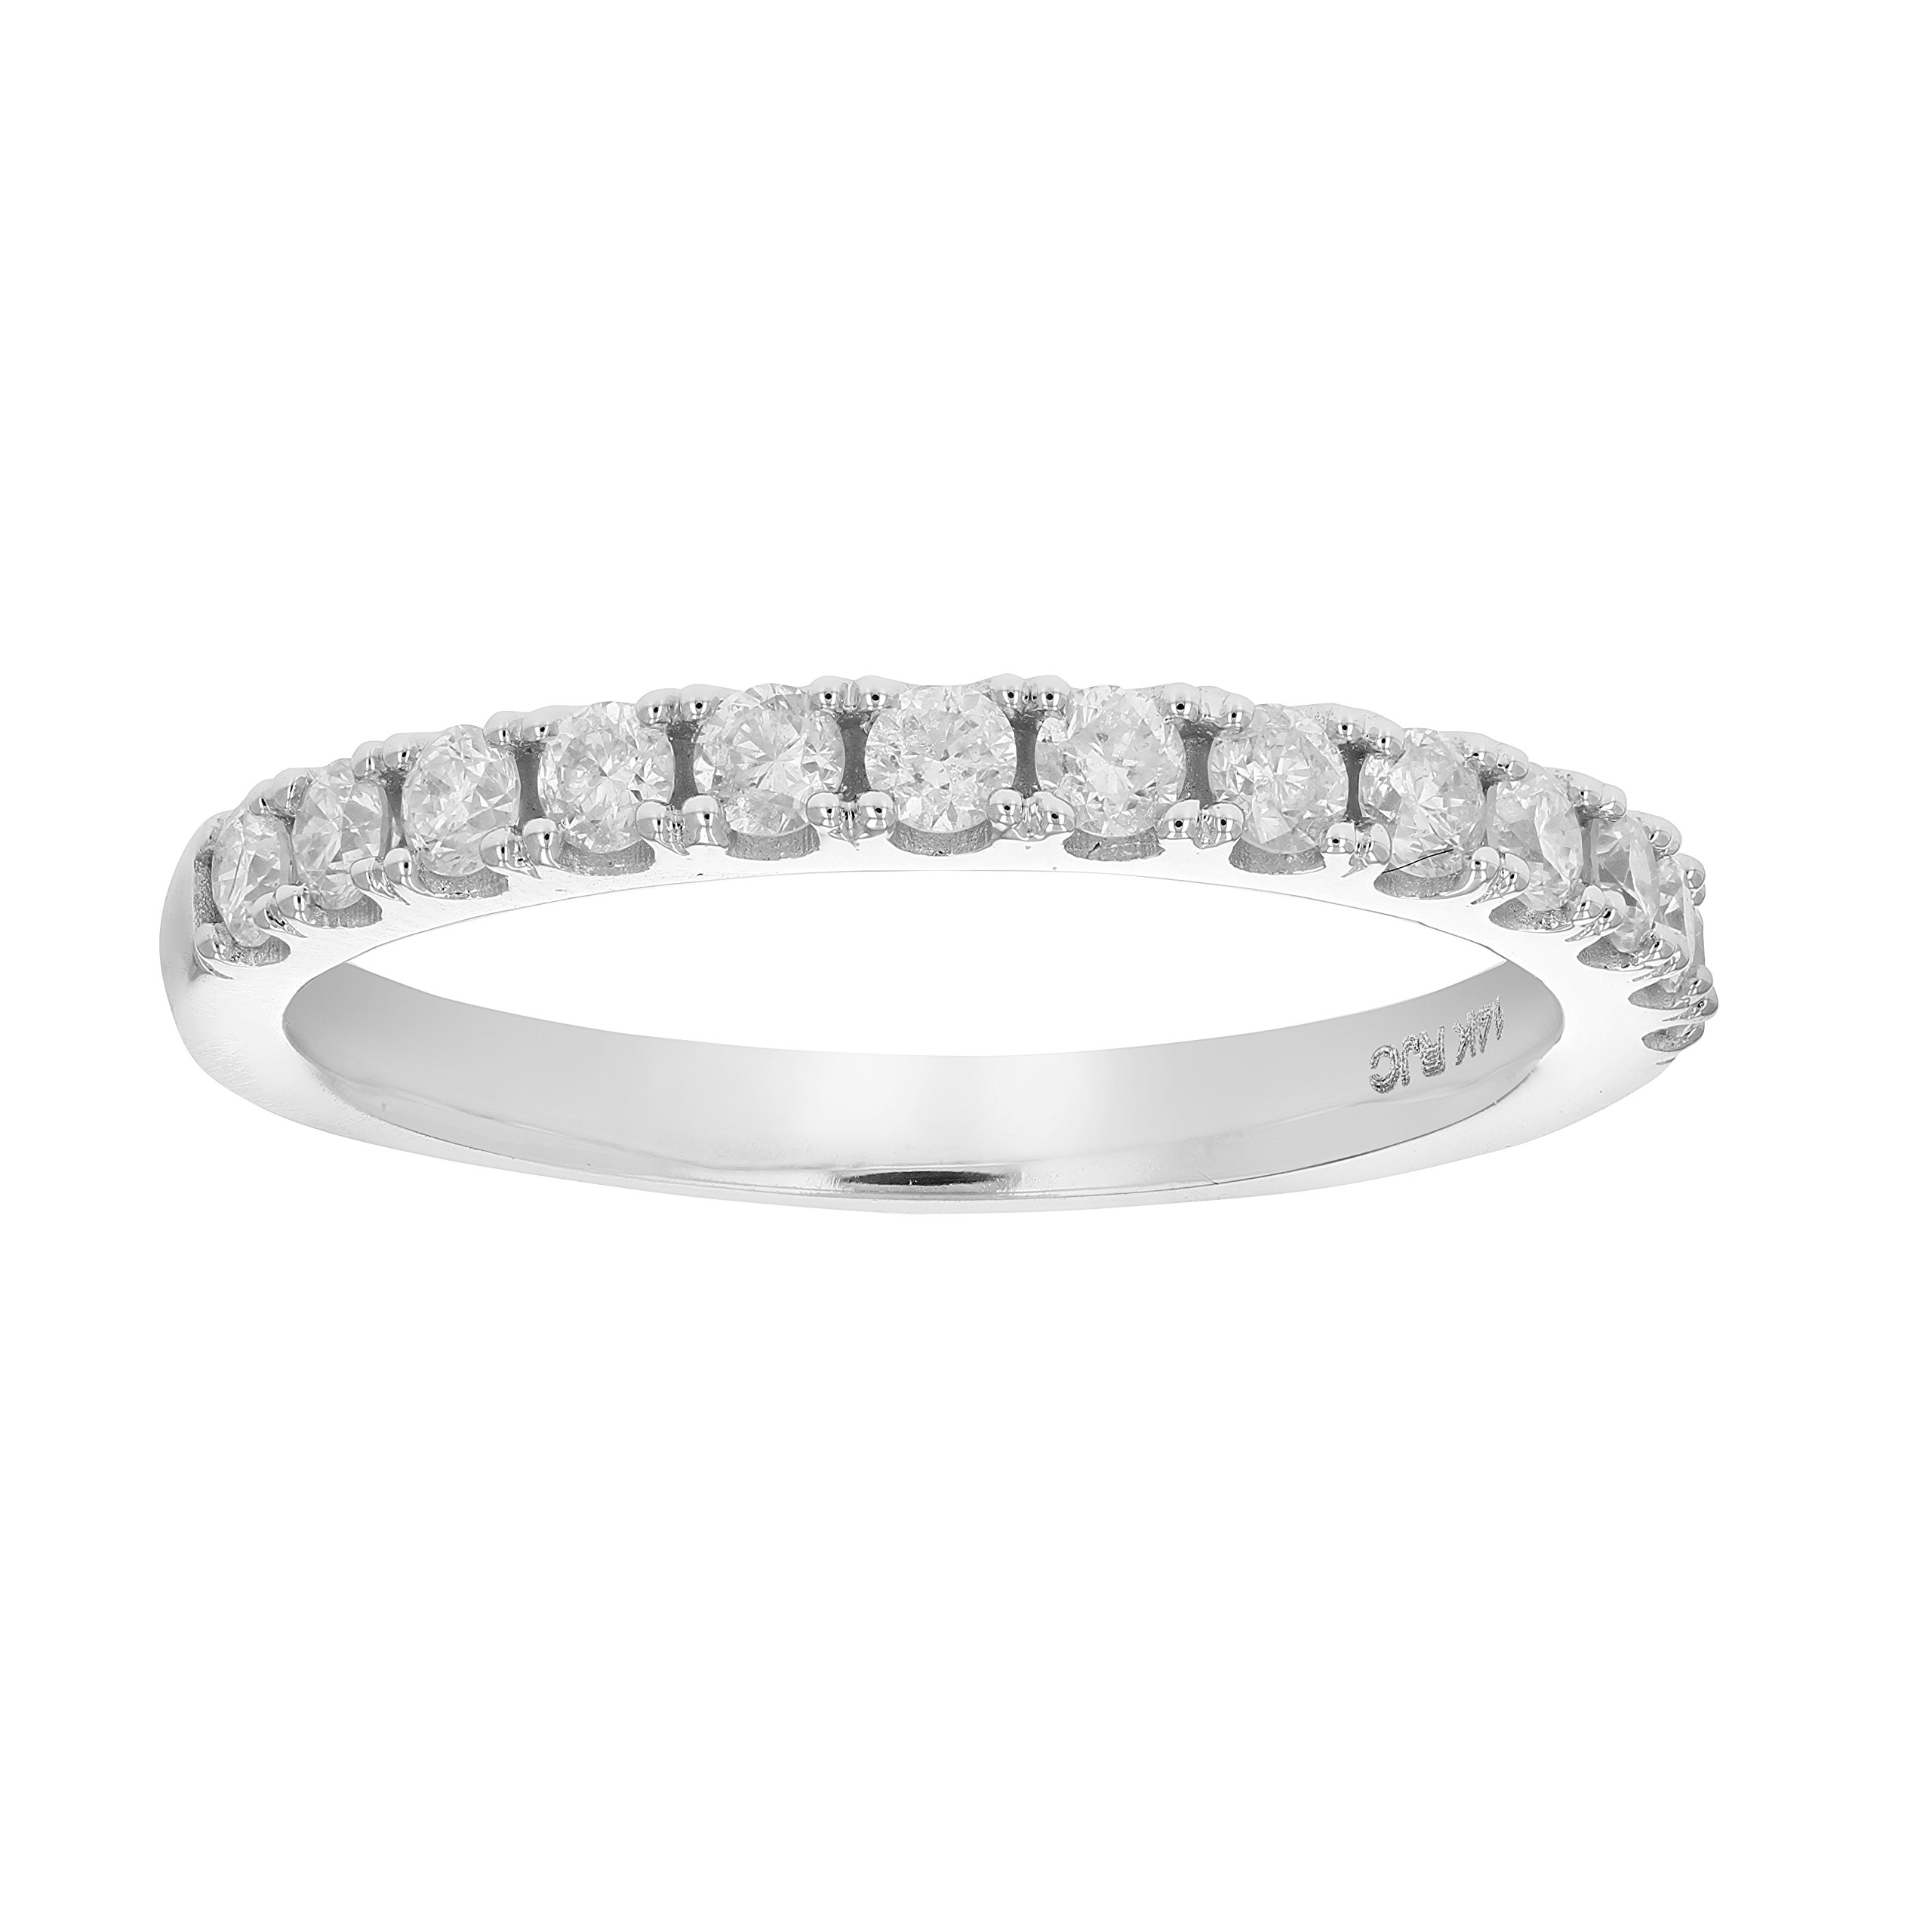 1/2 ctw AGS Certified I1-I2 Diamond Wedding Band in 14k White Gold in Size 7